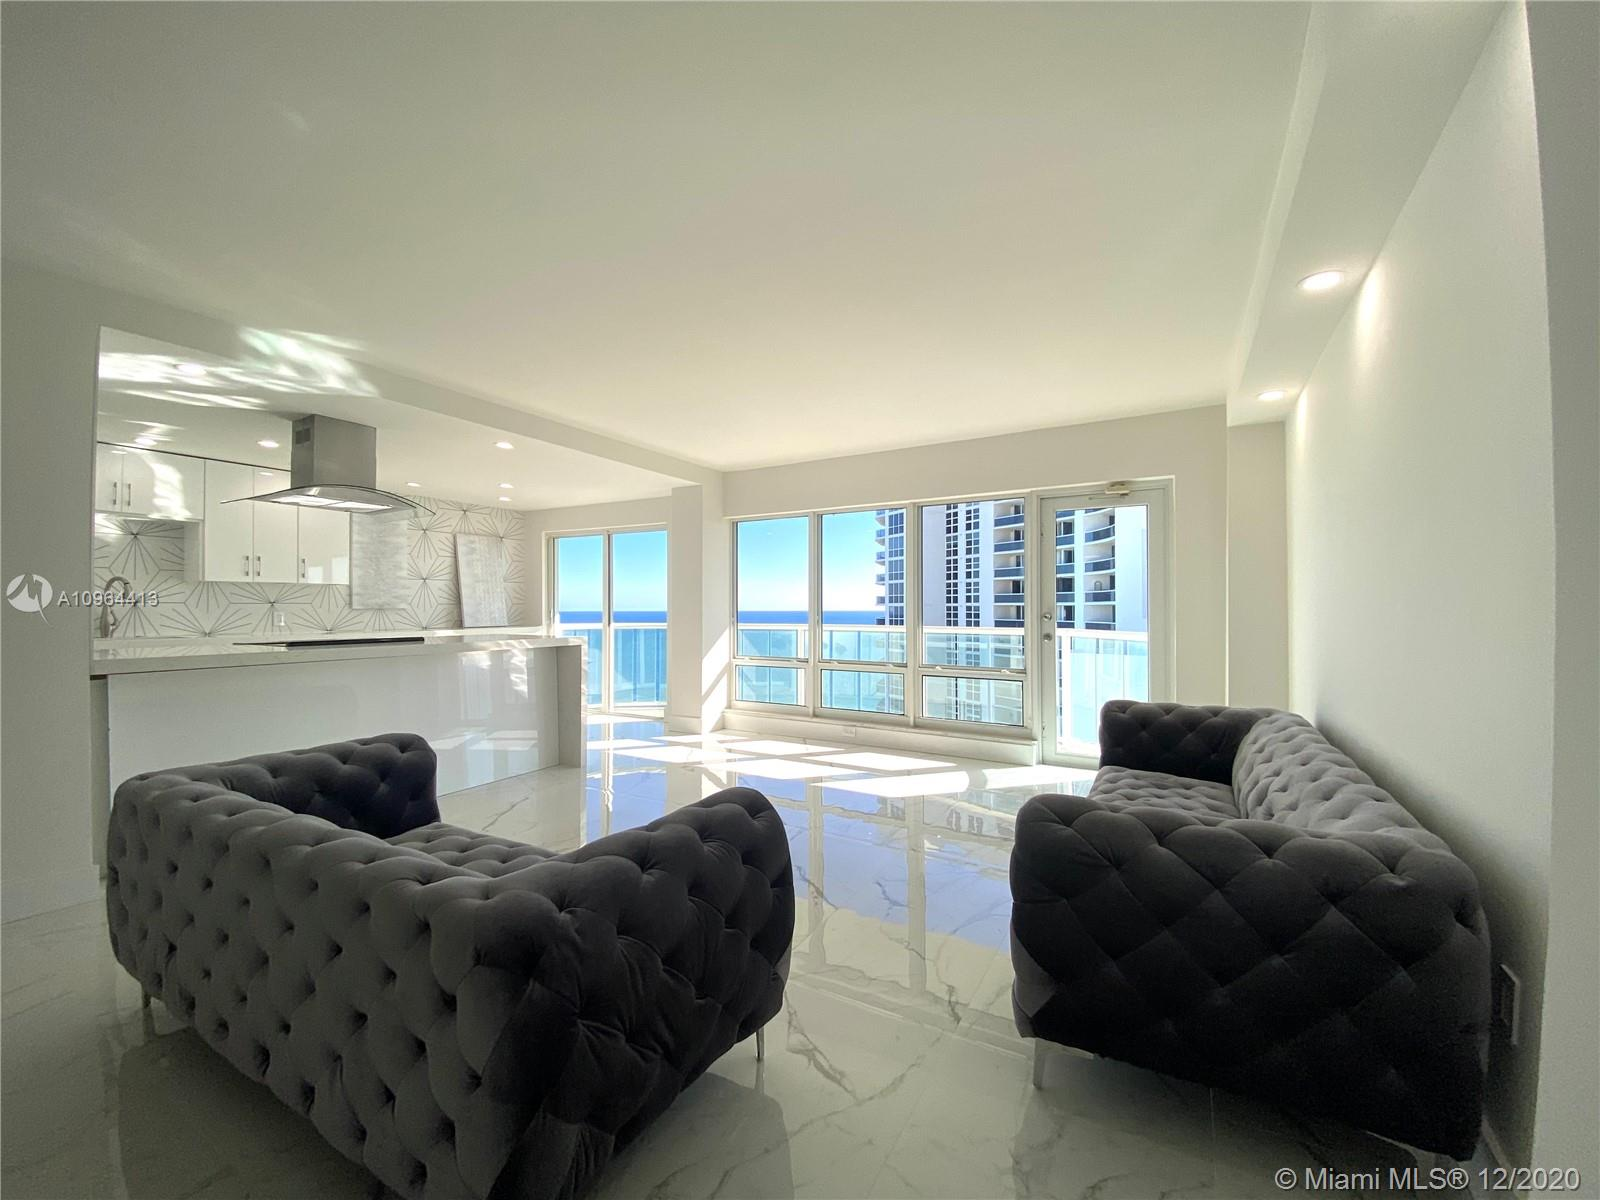 PENT HOUSE - AMAZING OPEN OCEAN AND CITY VIEW - SOUTH VIEW - 2 cover parking space. Brand New unit !!! fully remodel !!! Kitchen Aid appliance s, porcelain floor, new bathrooms , new closets, new kitchen cabinets, new new new !!!!! split bedrooms, each one in opposite site of living room !! LED lights, Bluetooth in bathrooms !! Must SEE !!!!